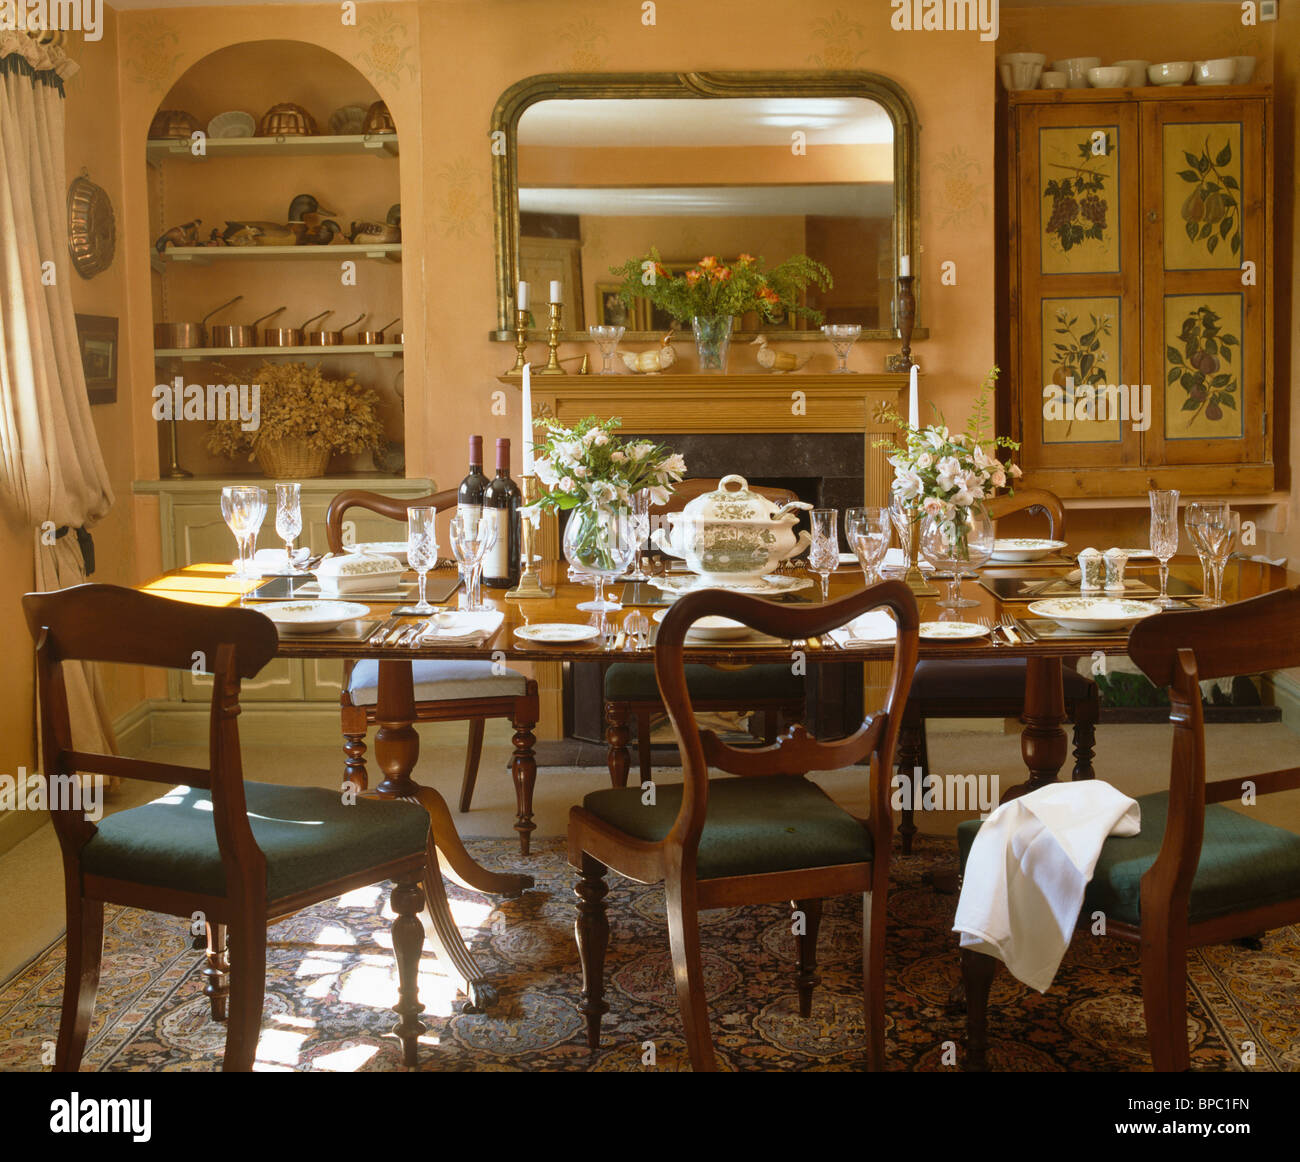 Antique Chairs At Table Set For Lunch In Country Dining Room With Large Mirror Above Fireplace And Alcove Shelving